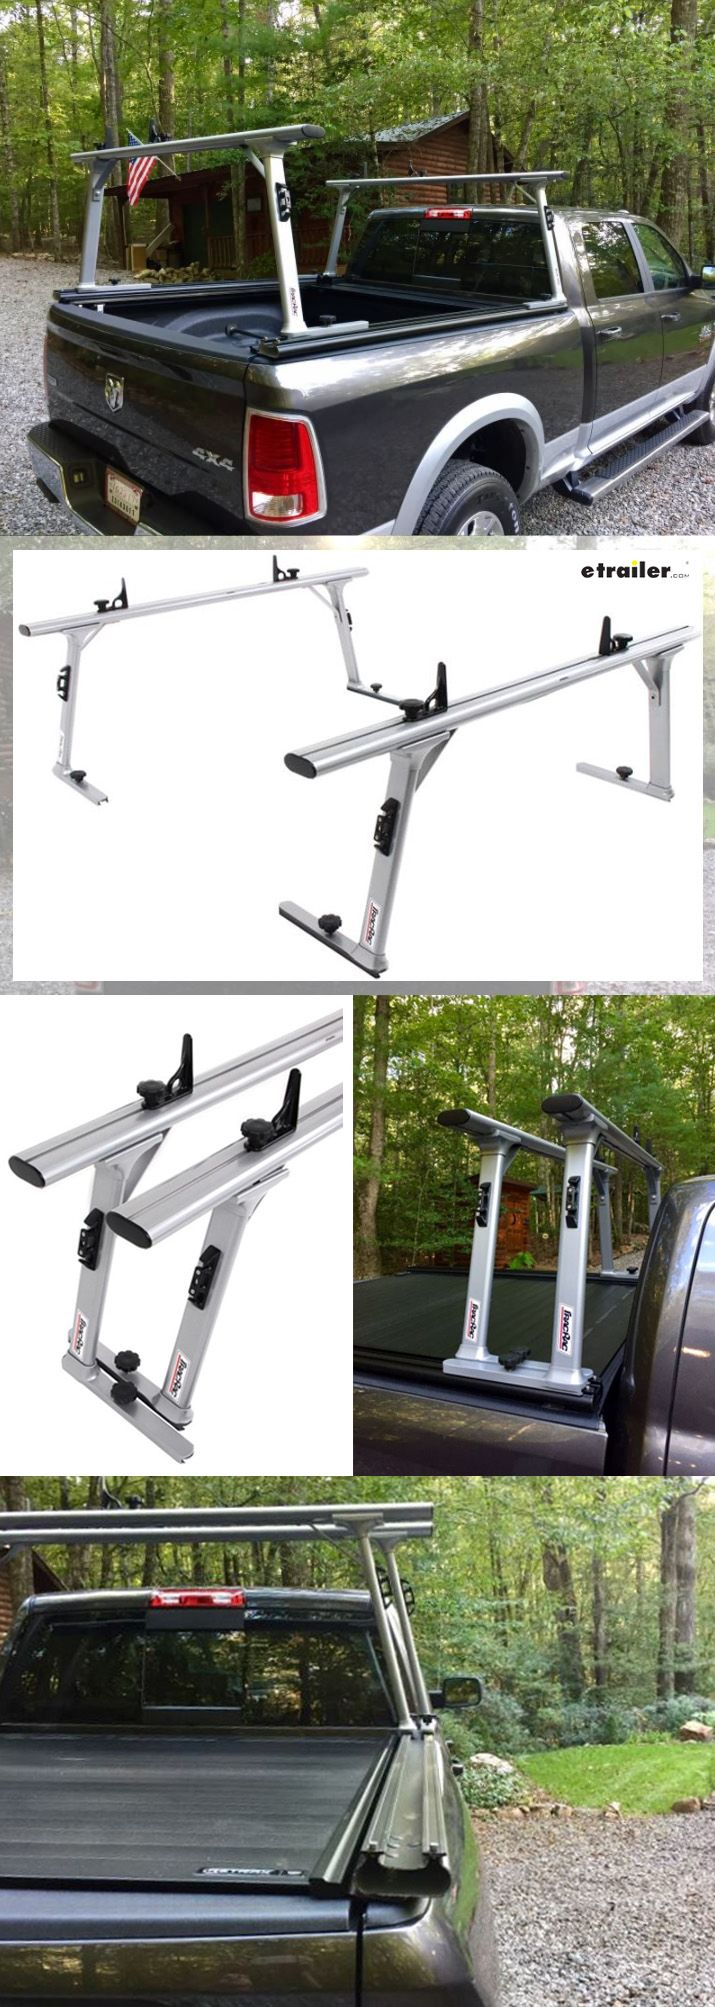 Adjustable ladder rack slides in t track base rails along the full length of your dodge ram pickup truck bed works for long loads short loads